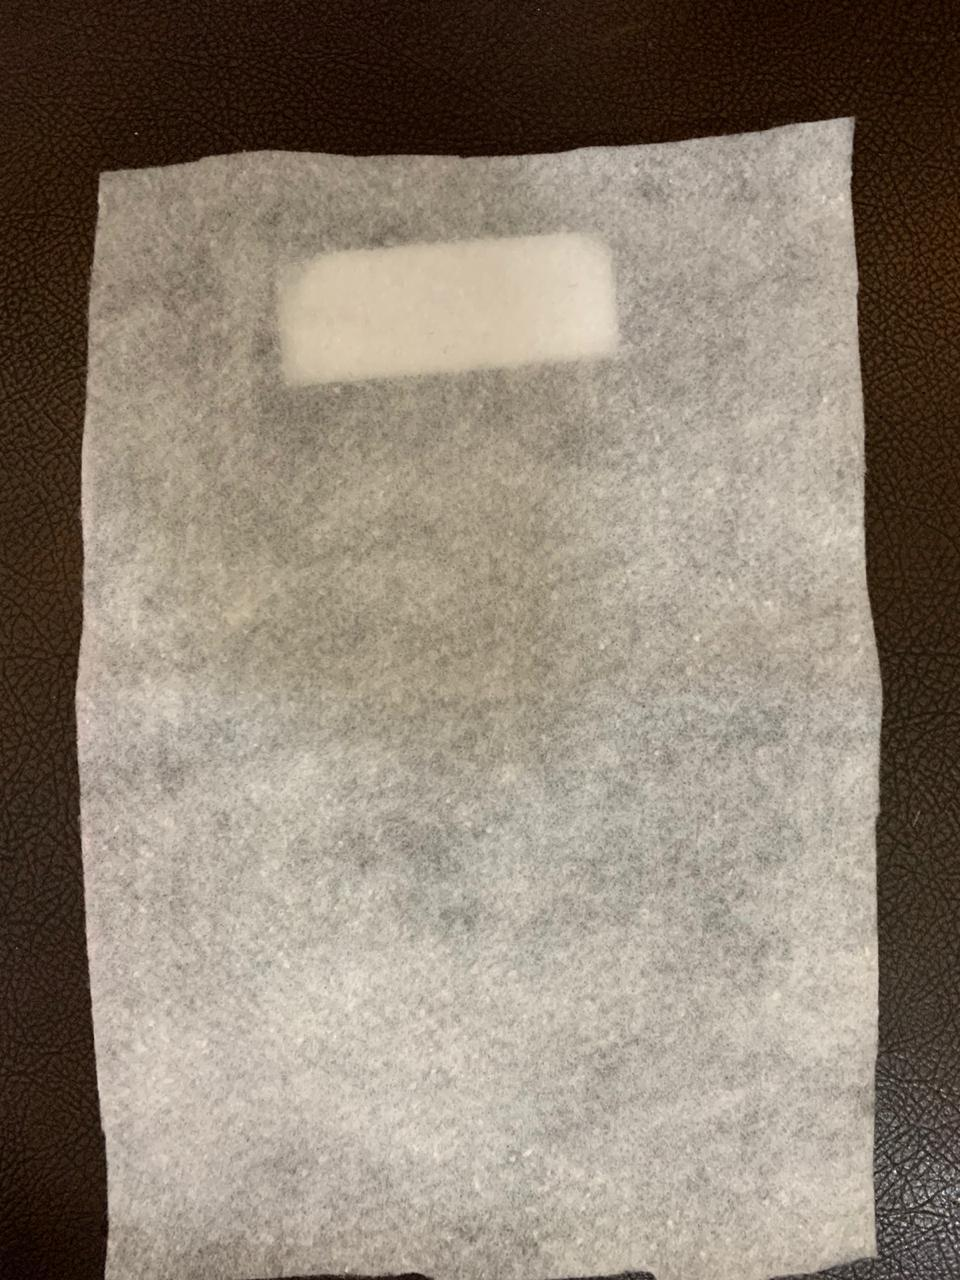 Hot air cotton filter layer N95 mask